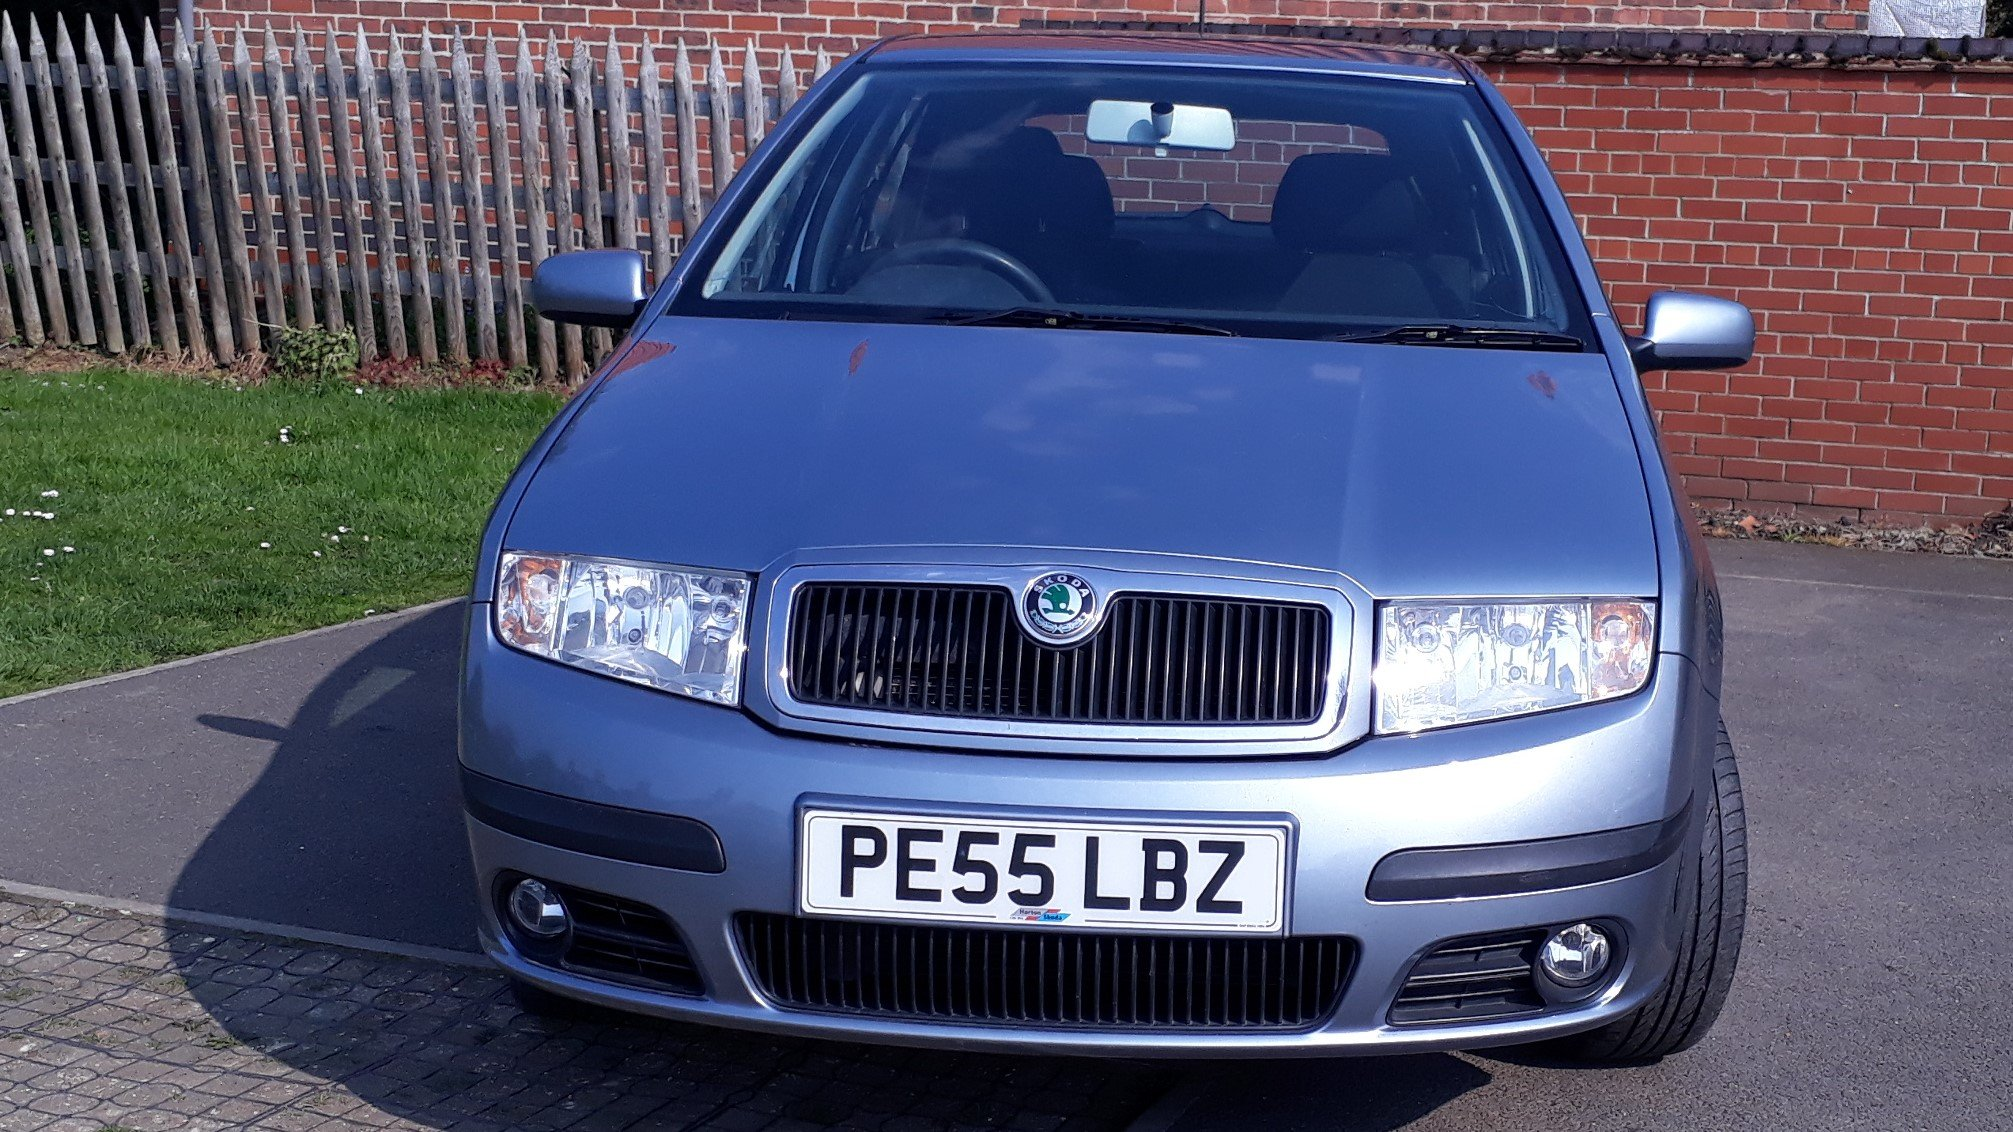 Skoda Fabia 1.2 12v HTP 2005 Petrol Manual 48k Miles 1 Owner SOLD (picture 1 of 6)